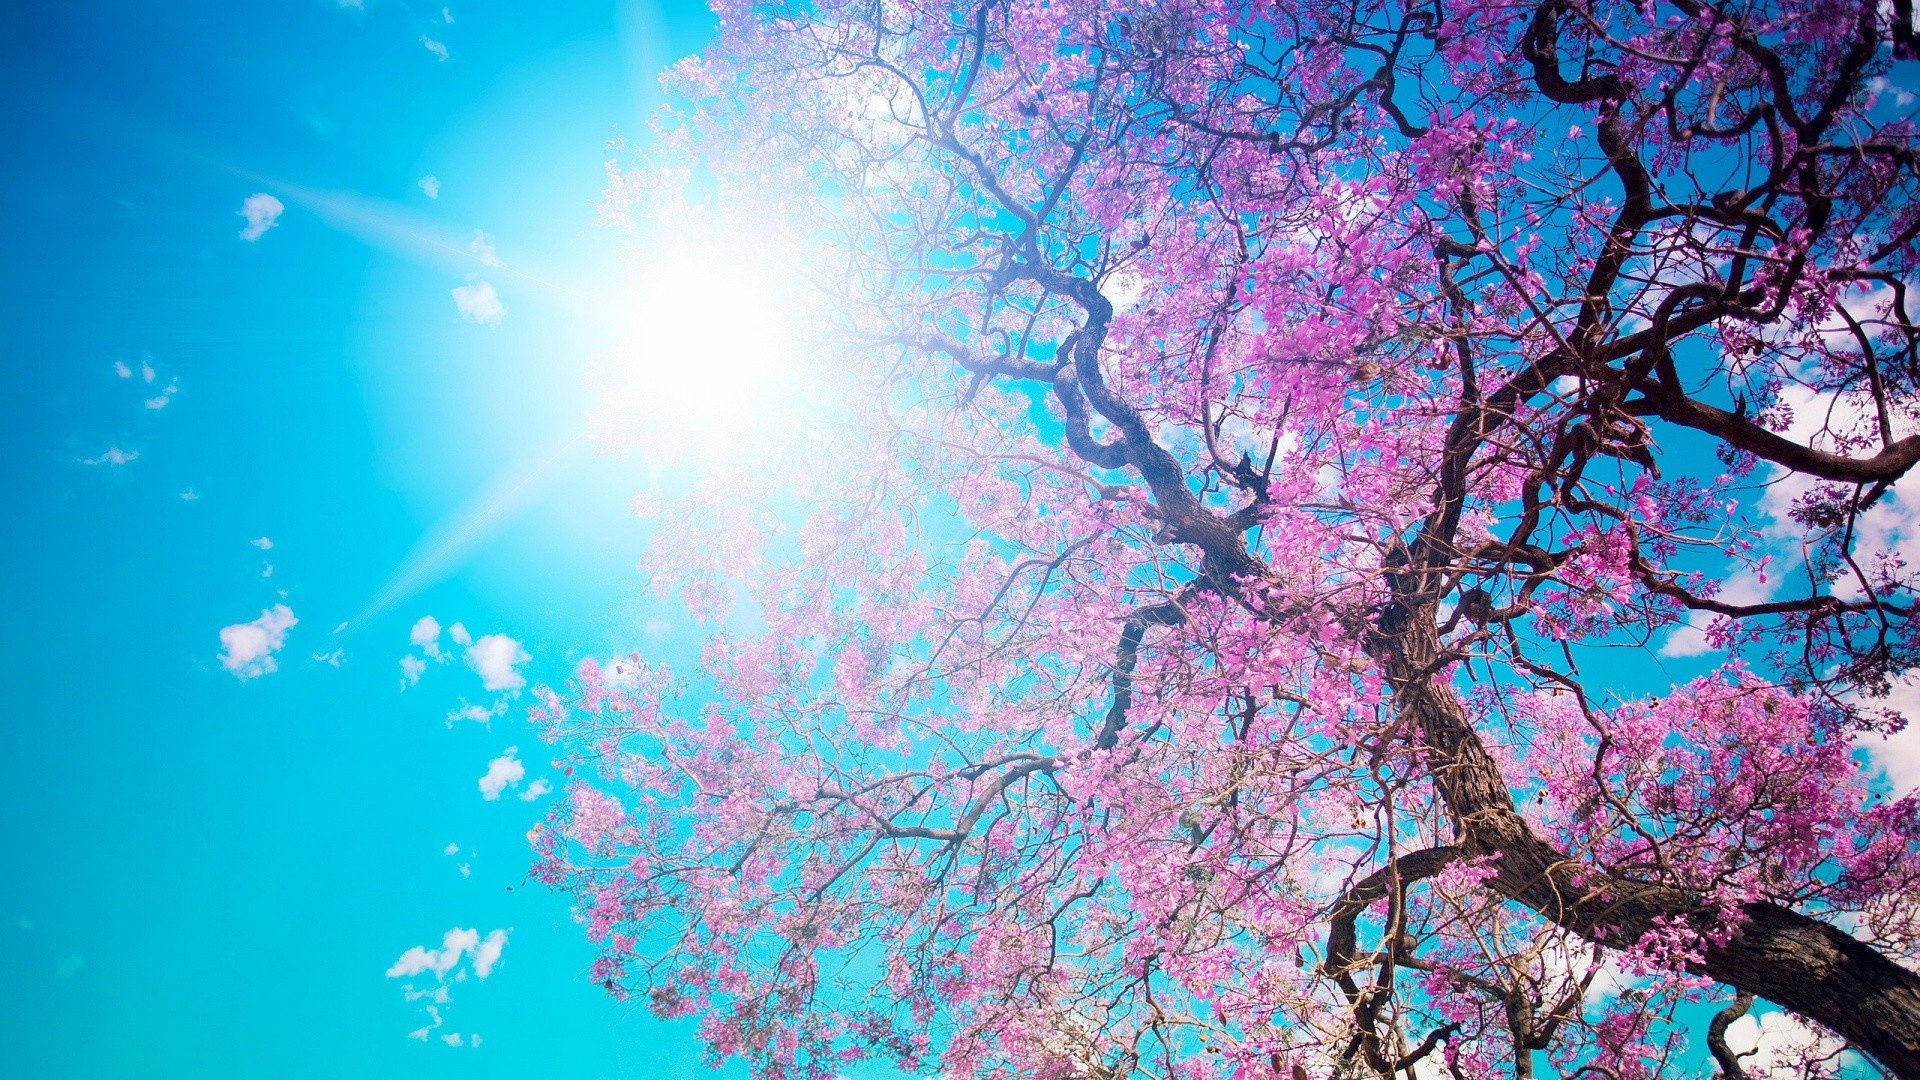 1920x1080 Free Spring Wallpaper HD For Desktop 35